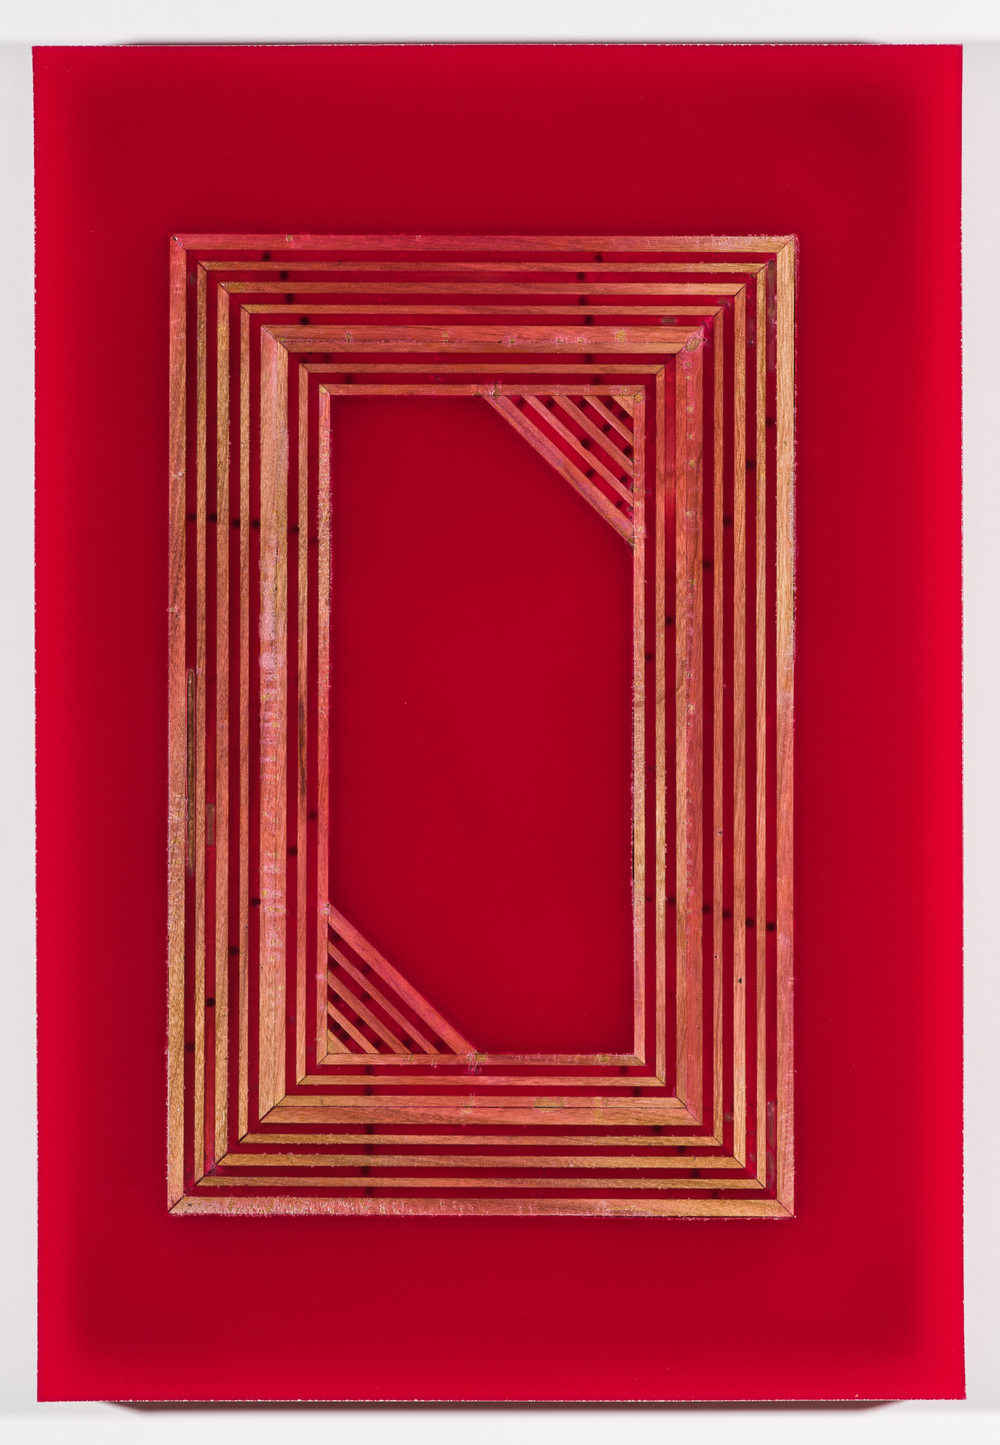 "Illuminated Manuscript #4, 11.5"" x 16.75 x 1.5"", 2016"